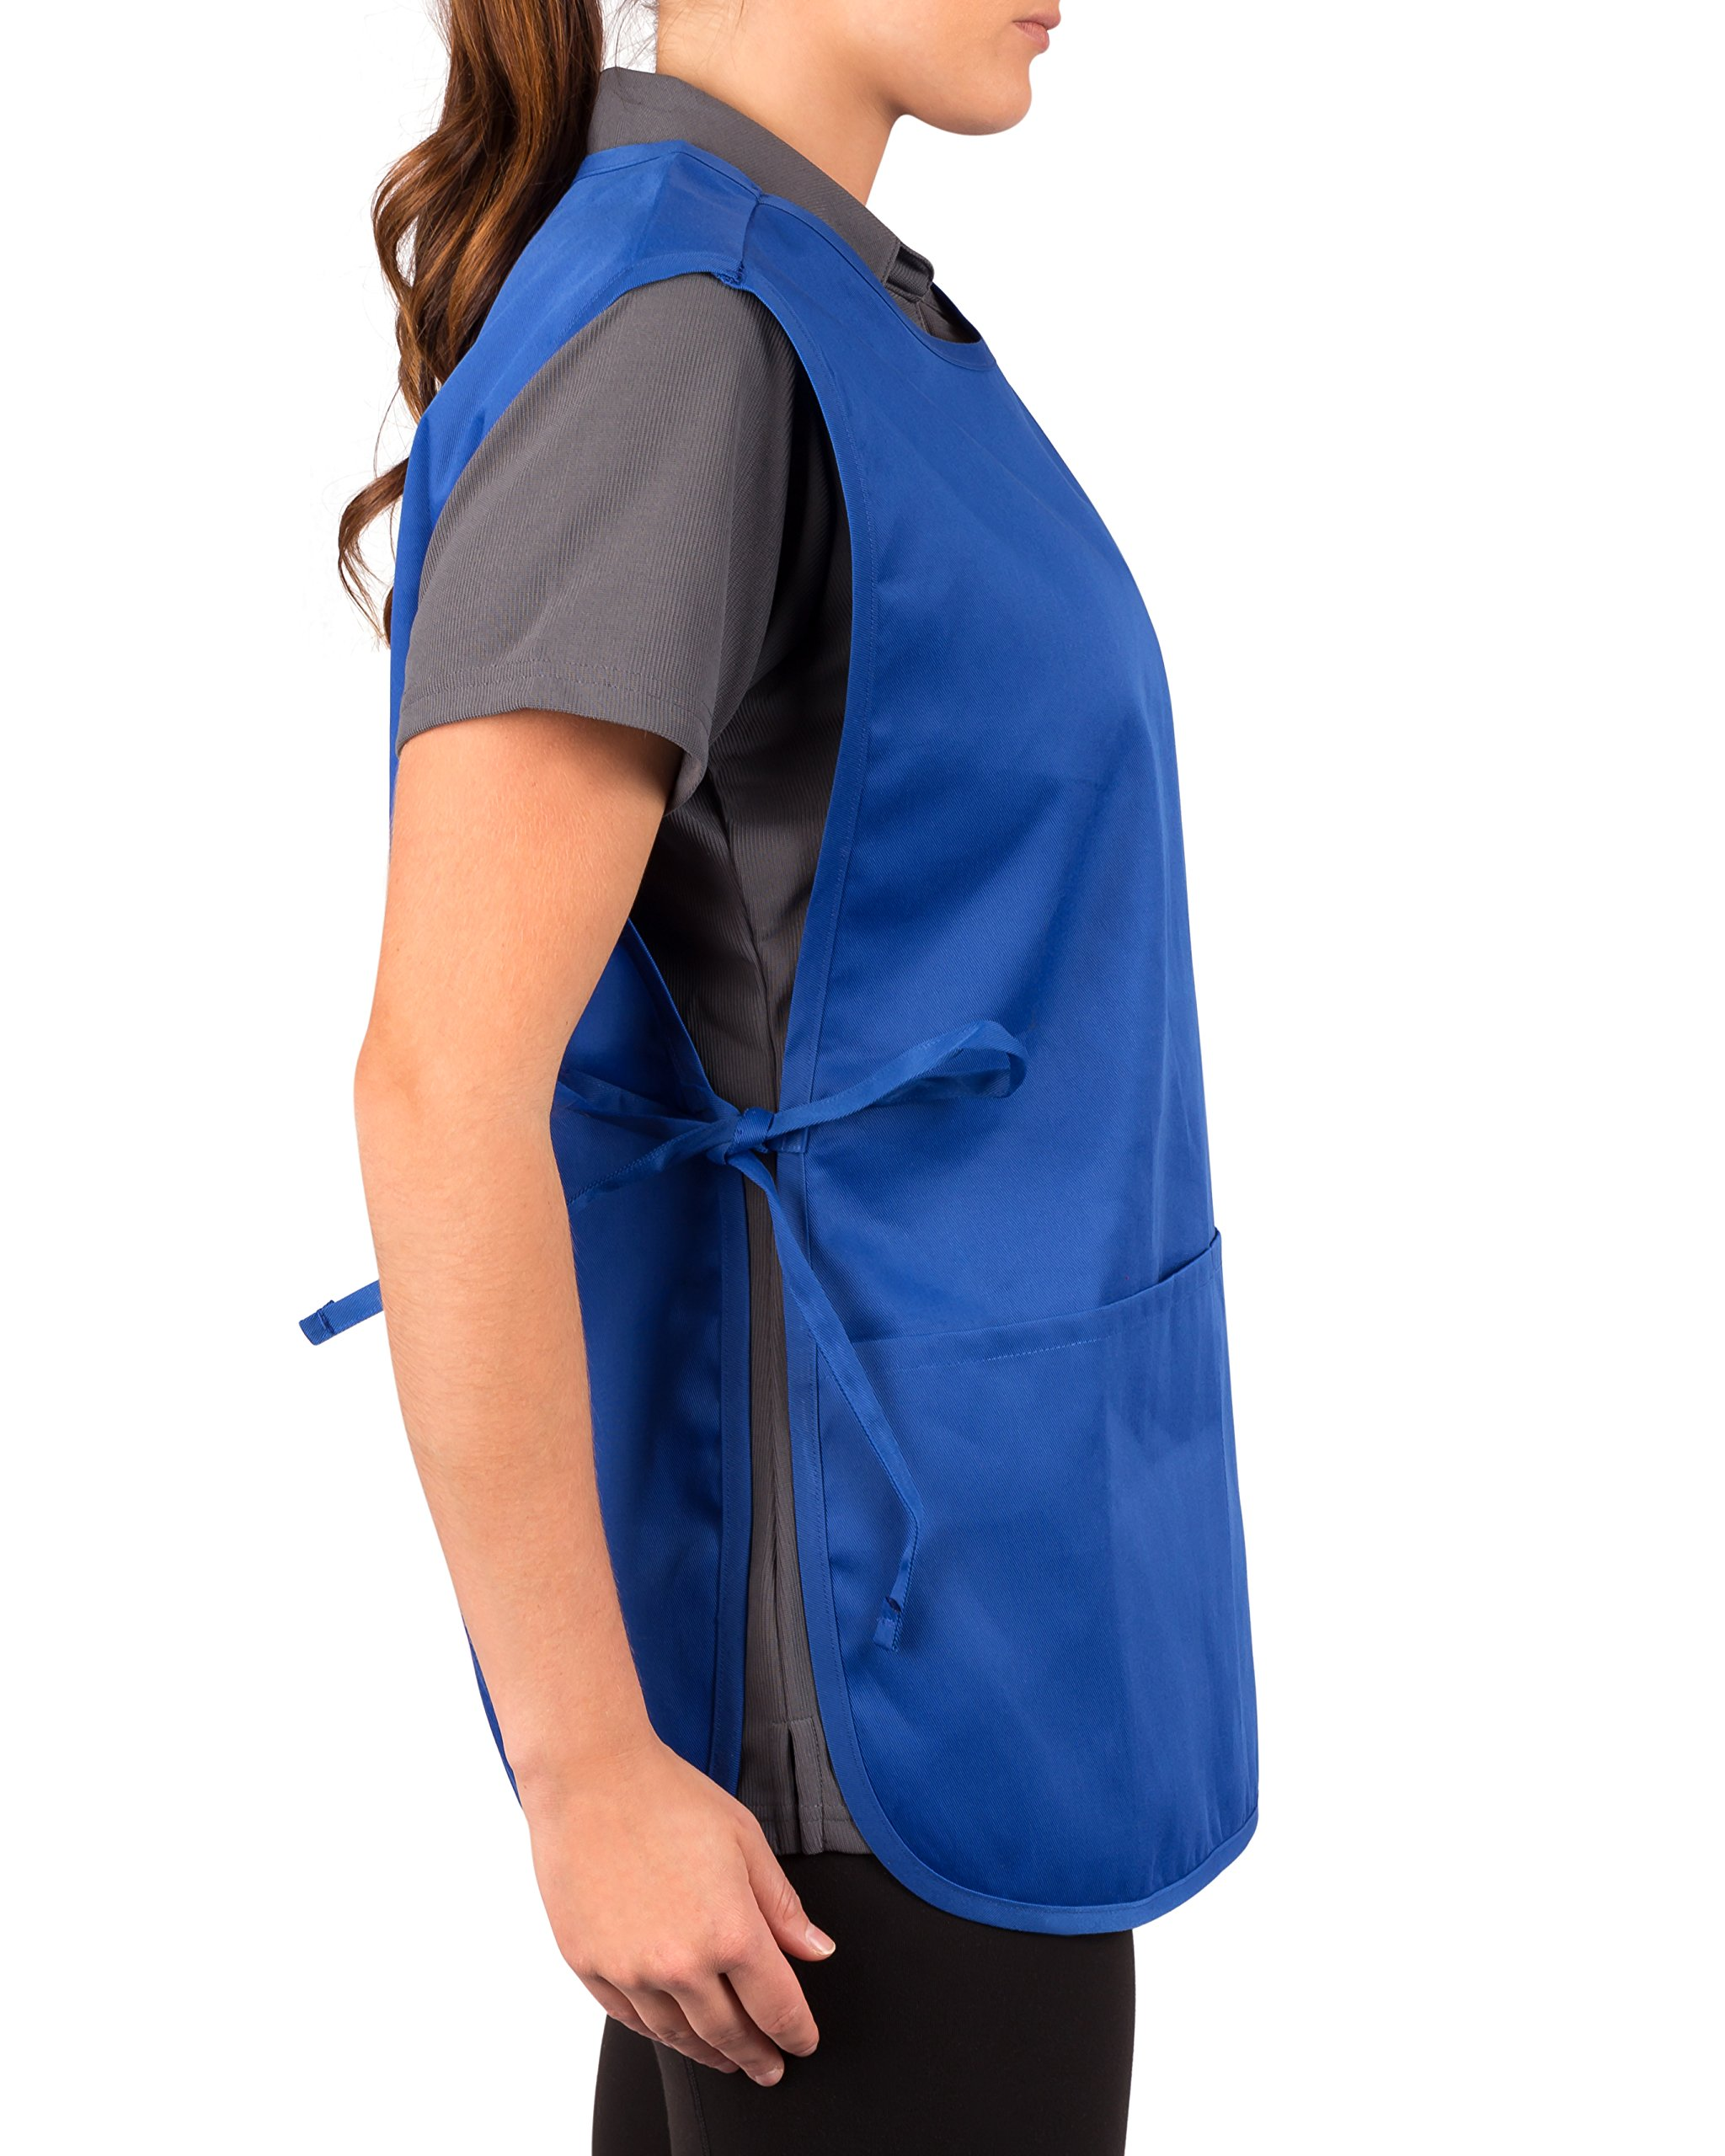 Royal Blue Cobbler Apron, Pack of 36 by KNG (Image #4)